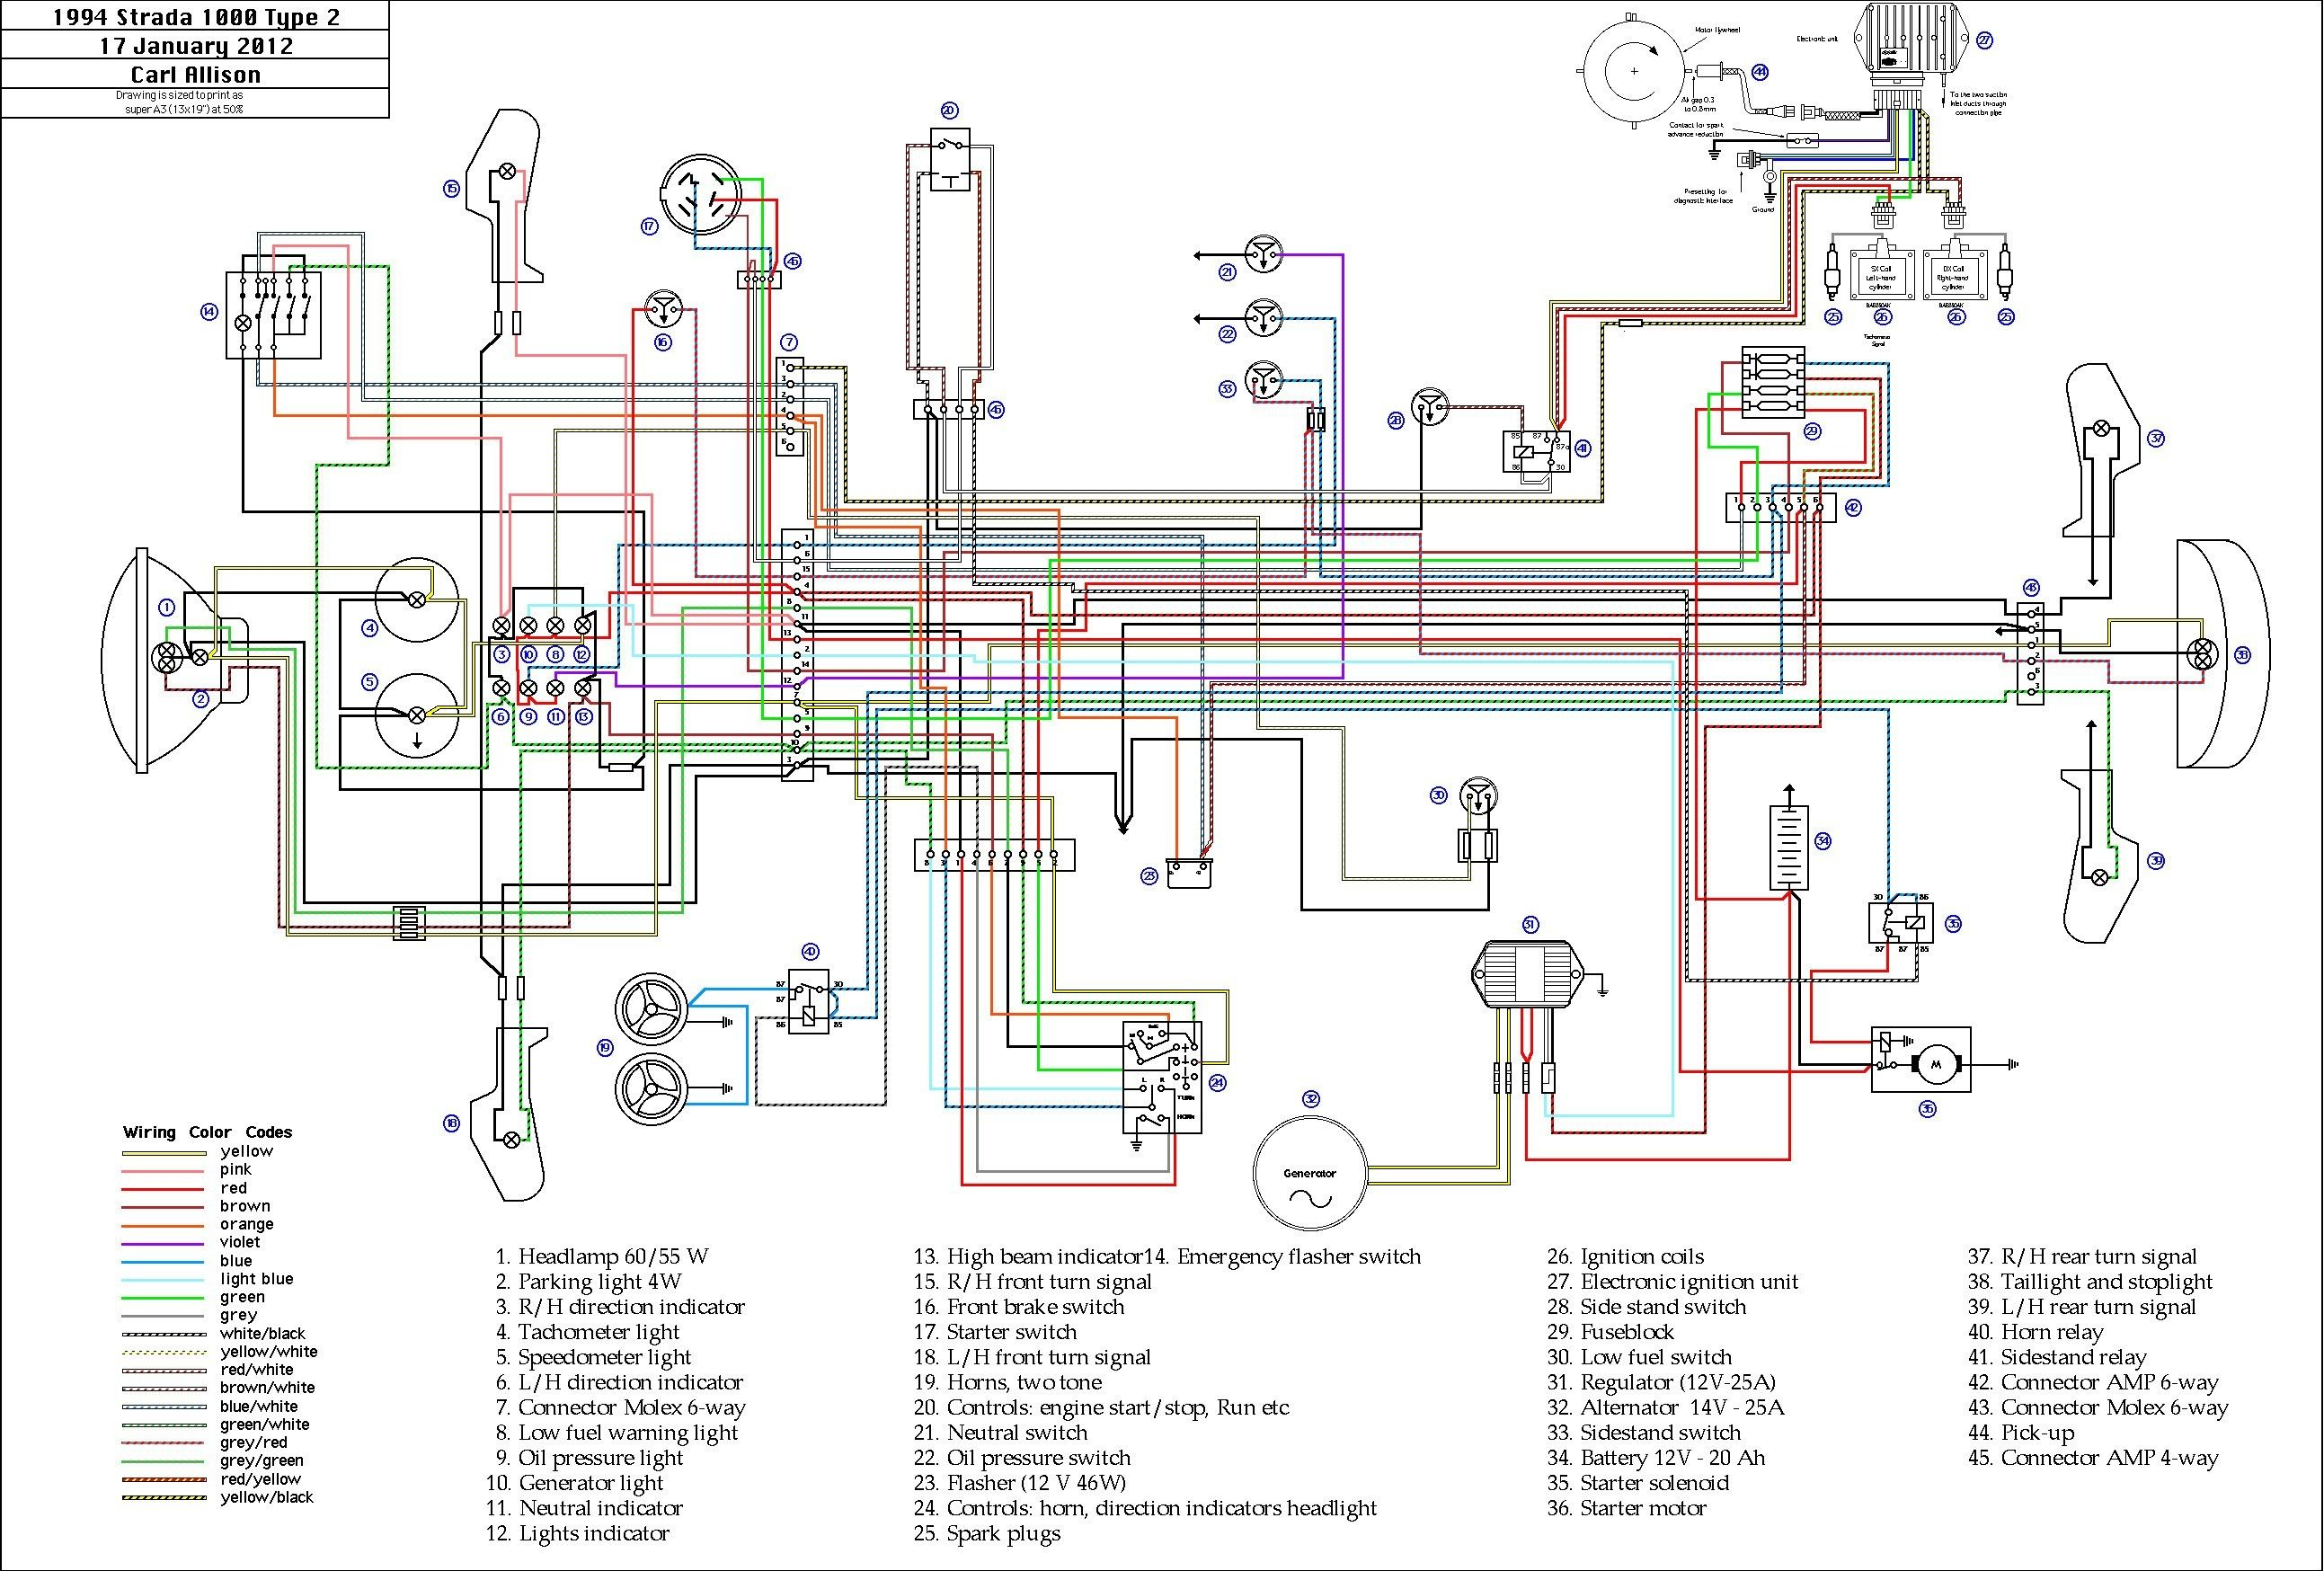 Unique Trailer Wiring Diagram 94 Jeep Grand Cherokee ... on